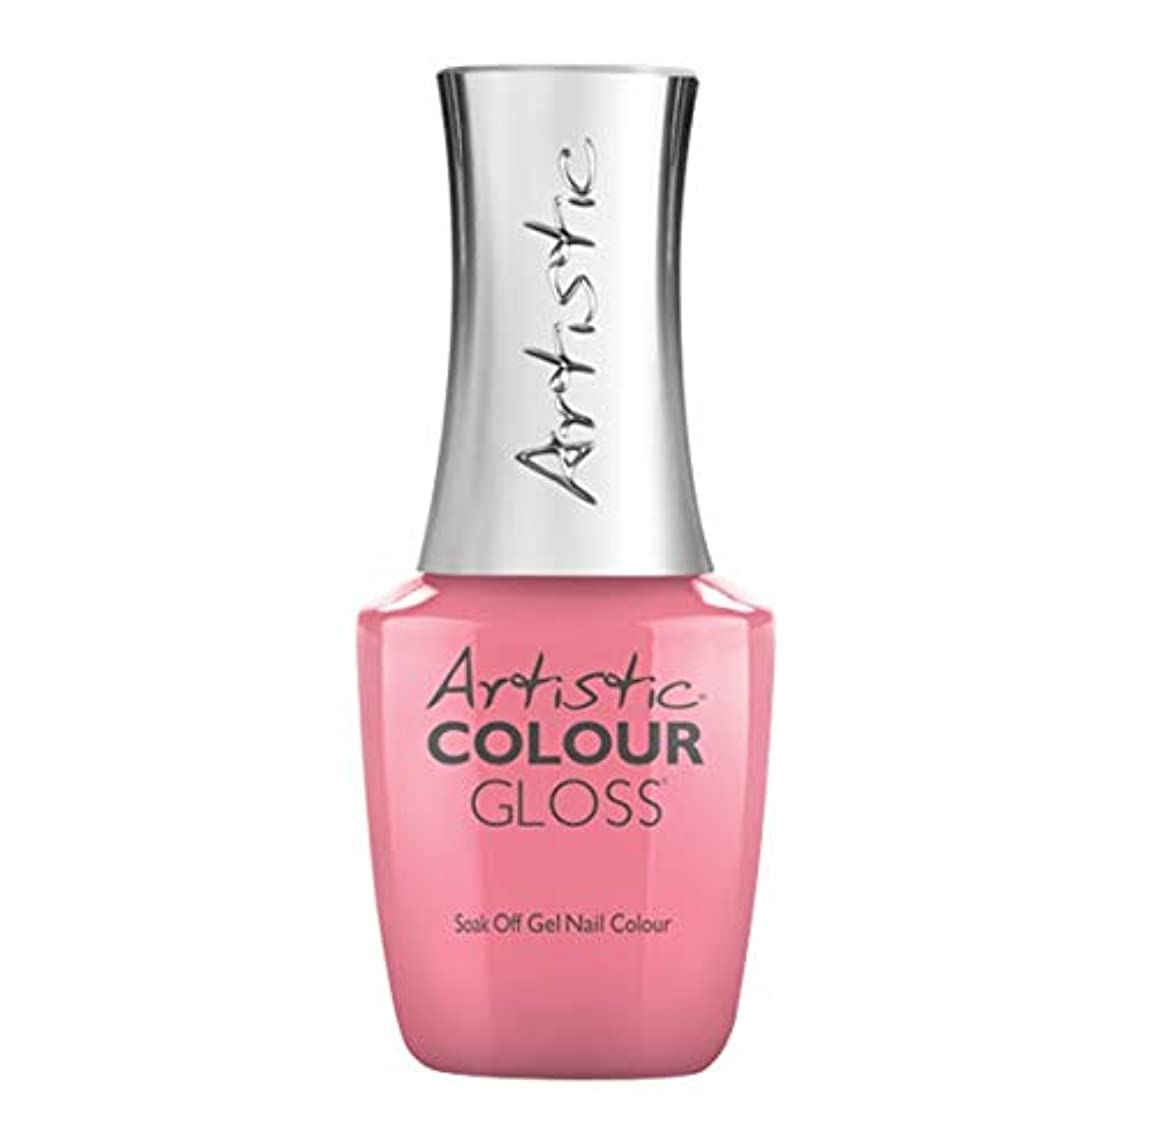 漏斗ディンカルビルランデブーArtistic Colour Gloss Gel - Bad Habit - 0.5oz / 15ml